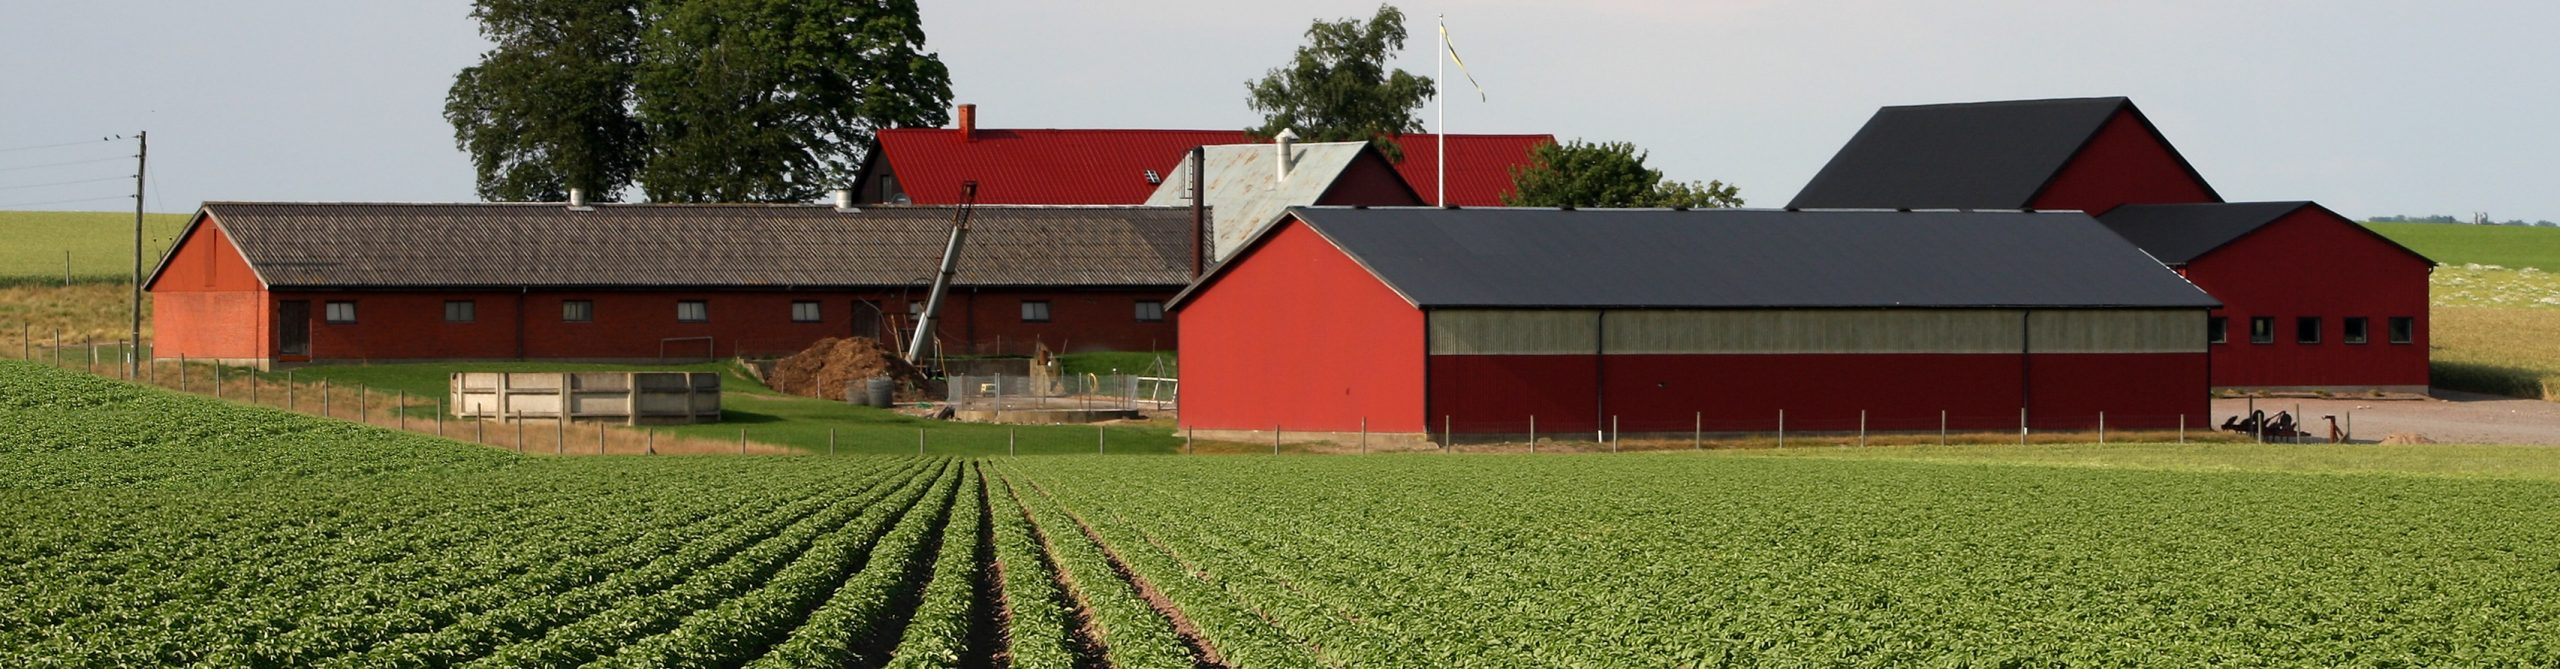 Farm with rows of crops